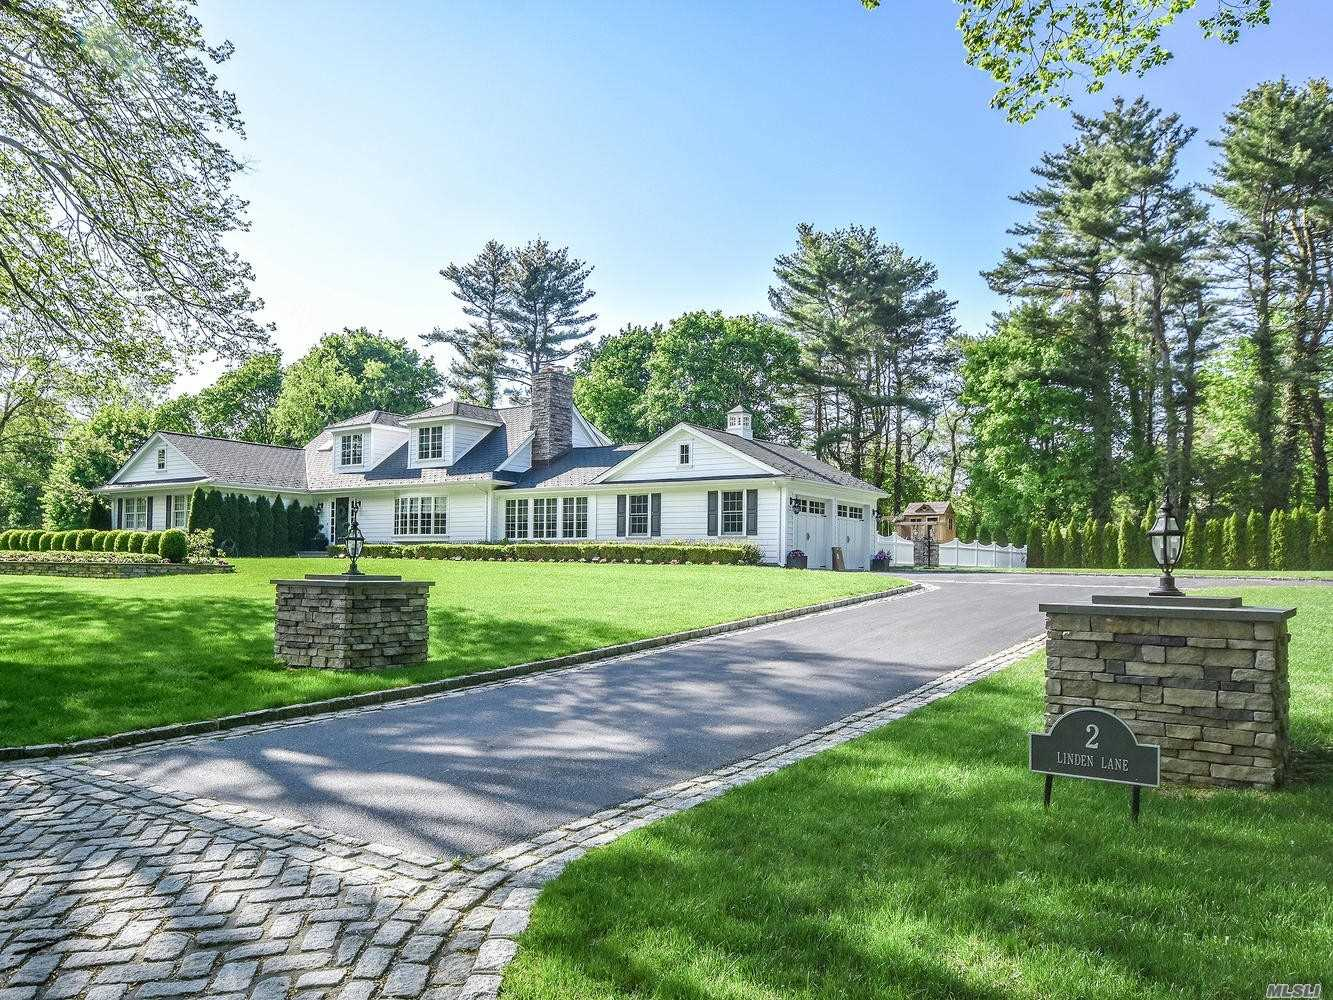 Character and Charm are evident in this Beautifully Renovated Farm Ranch. Open Floor Plan for Comfortable Living and Entertaining. Sun Drenched Rooms. Radiant Floors. 2 Fireplaces. Fire Pit. Built in BBQ. Patio. Generator. 2 Acres. This spectacular Home has it all.